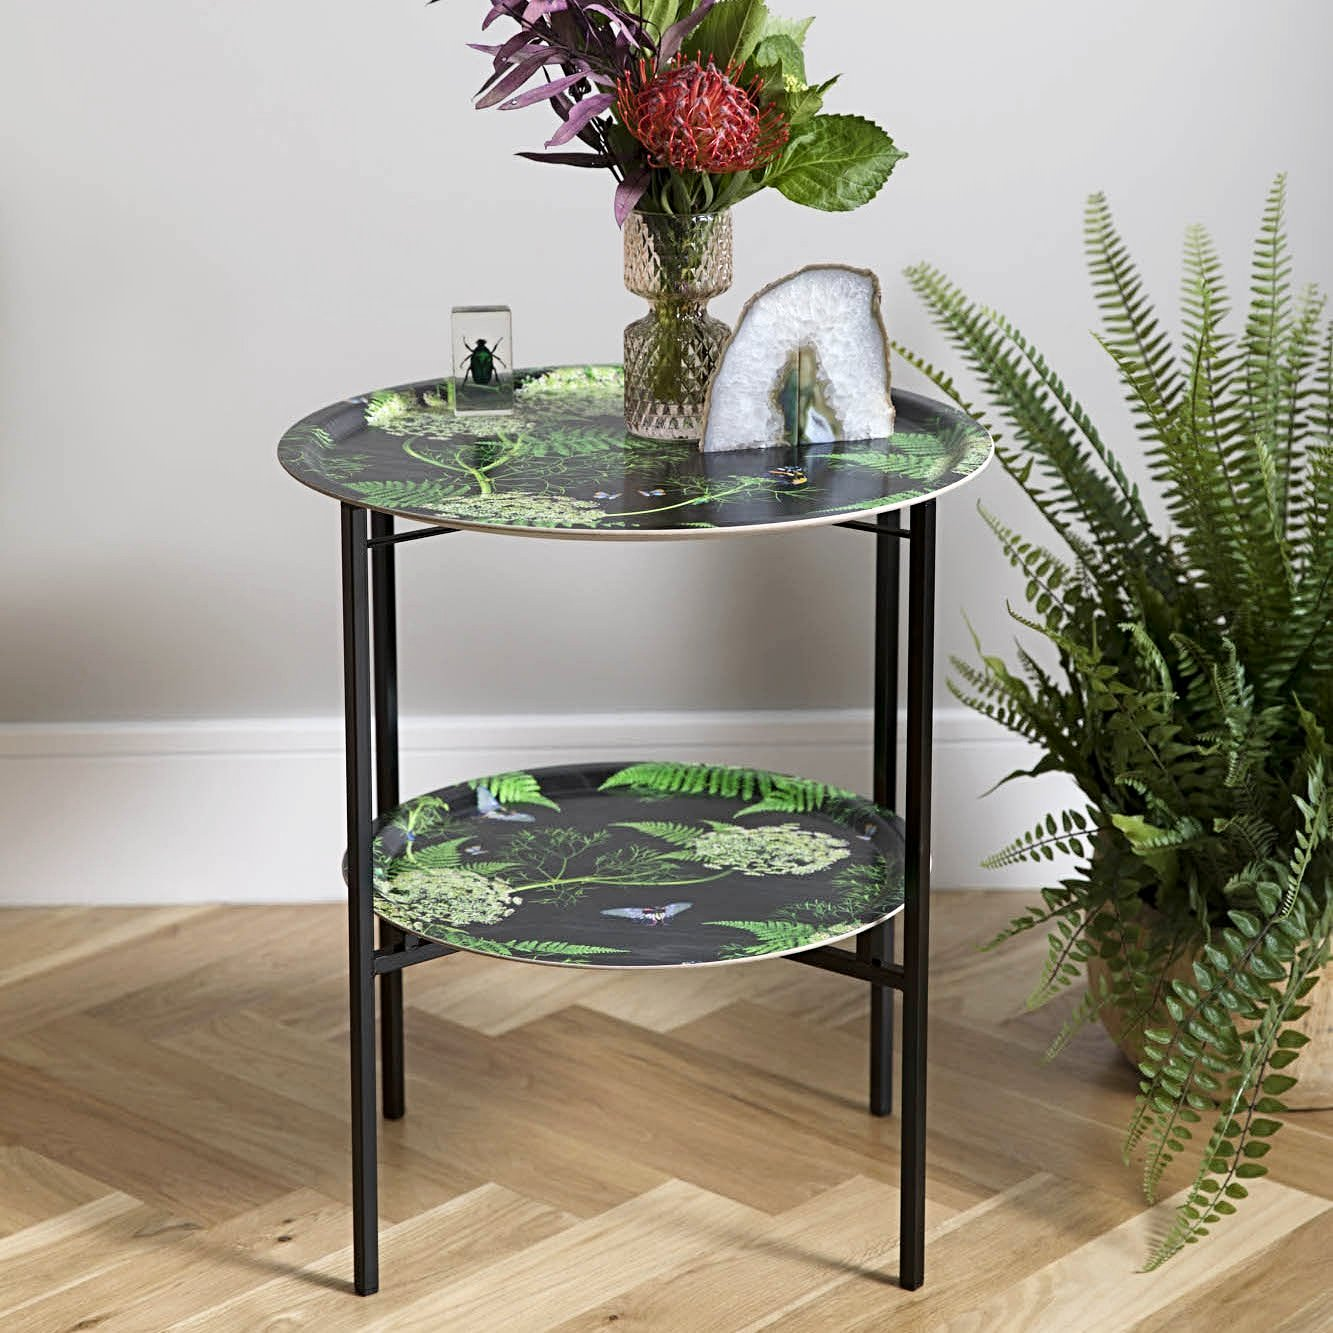 Black and green folding coffee table by Michael Angove